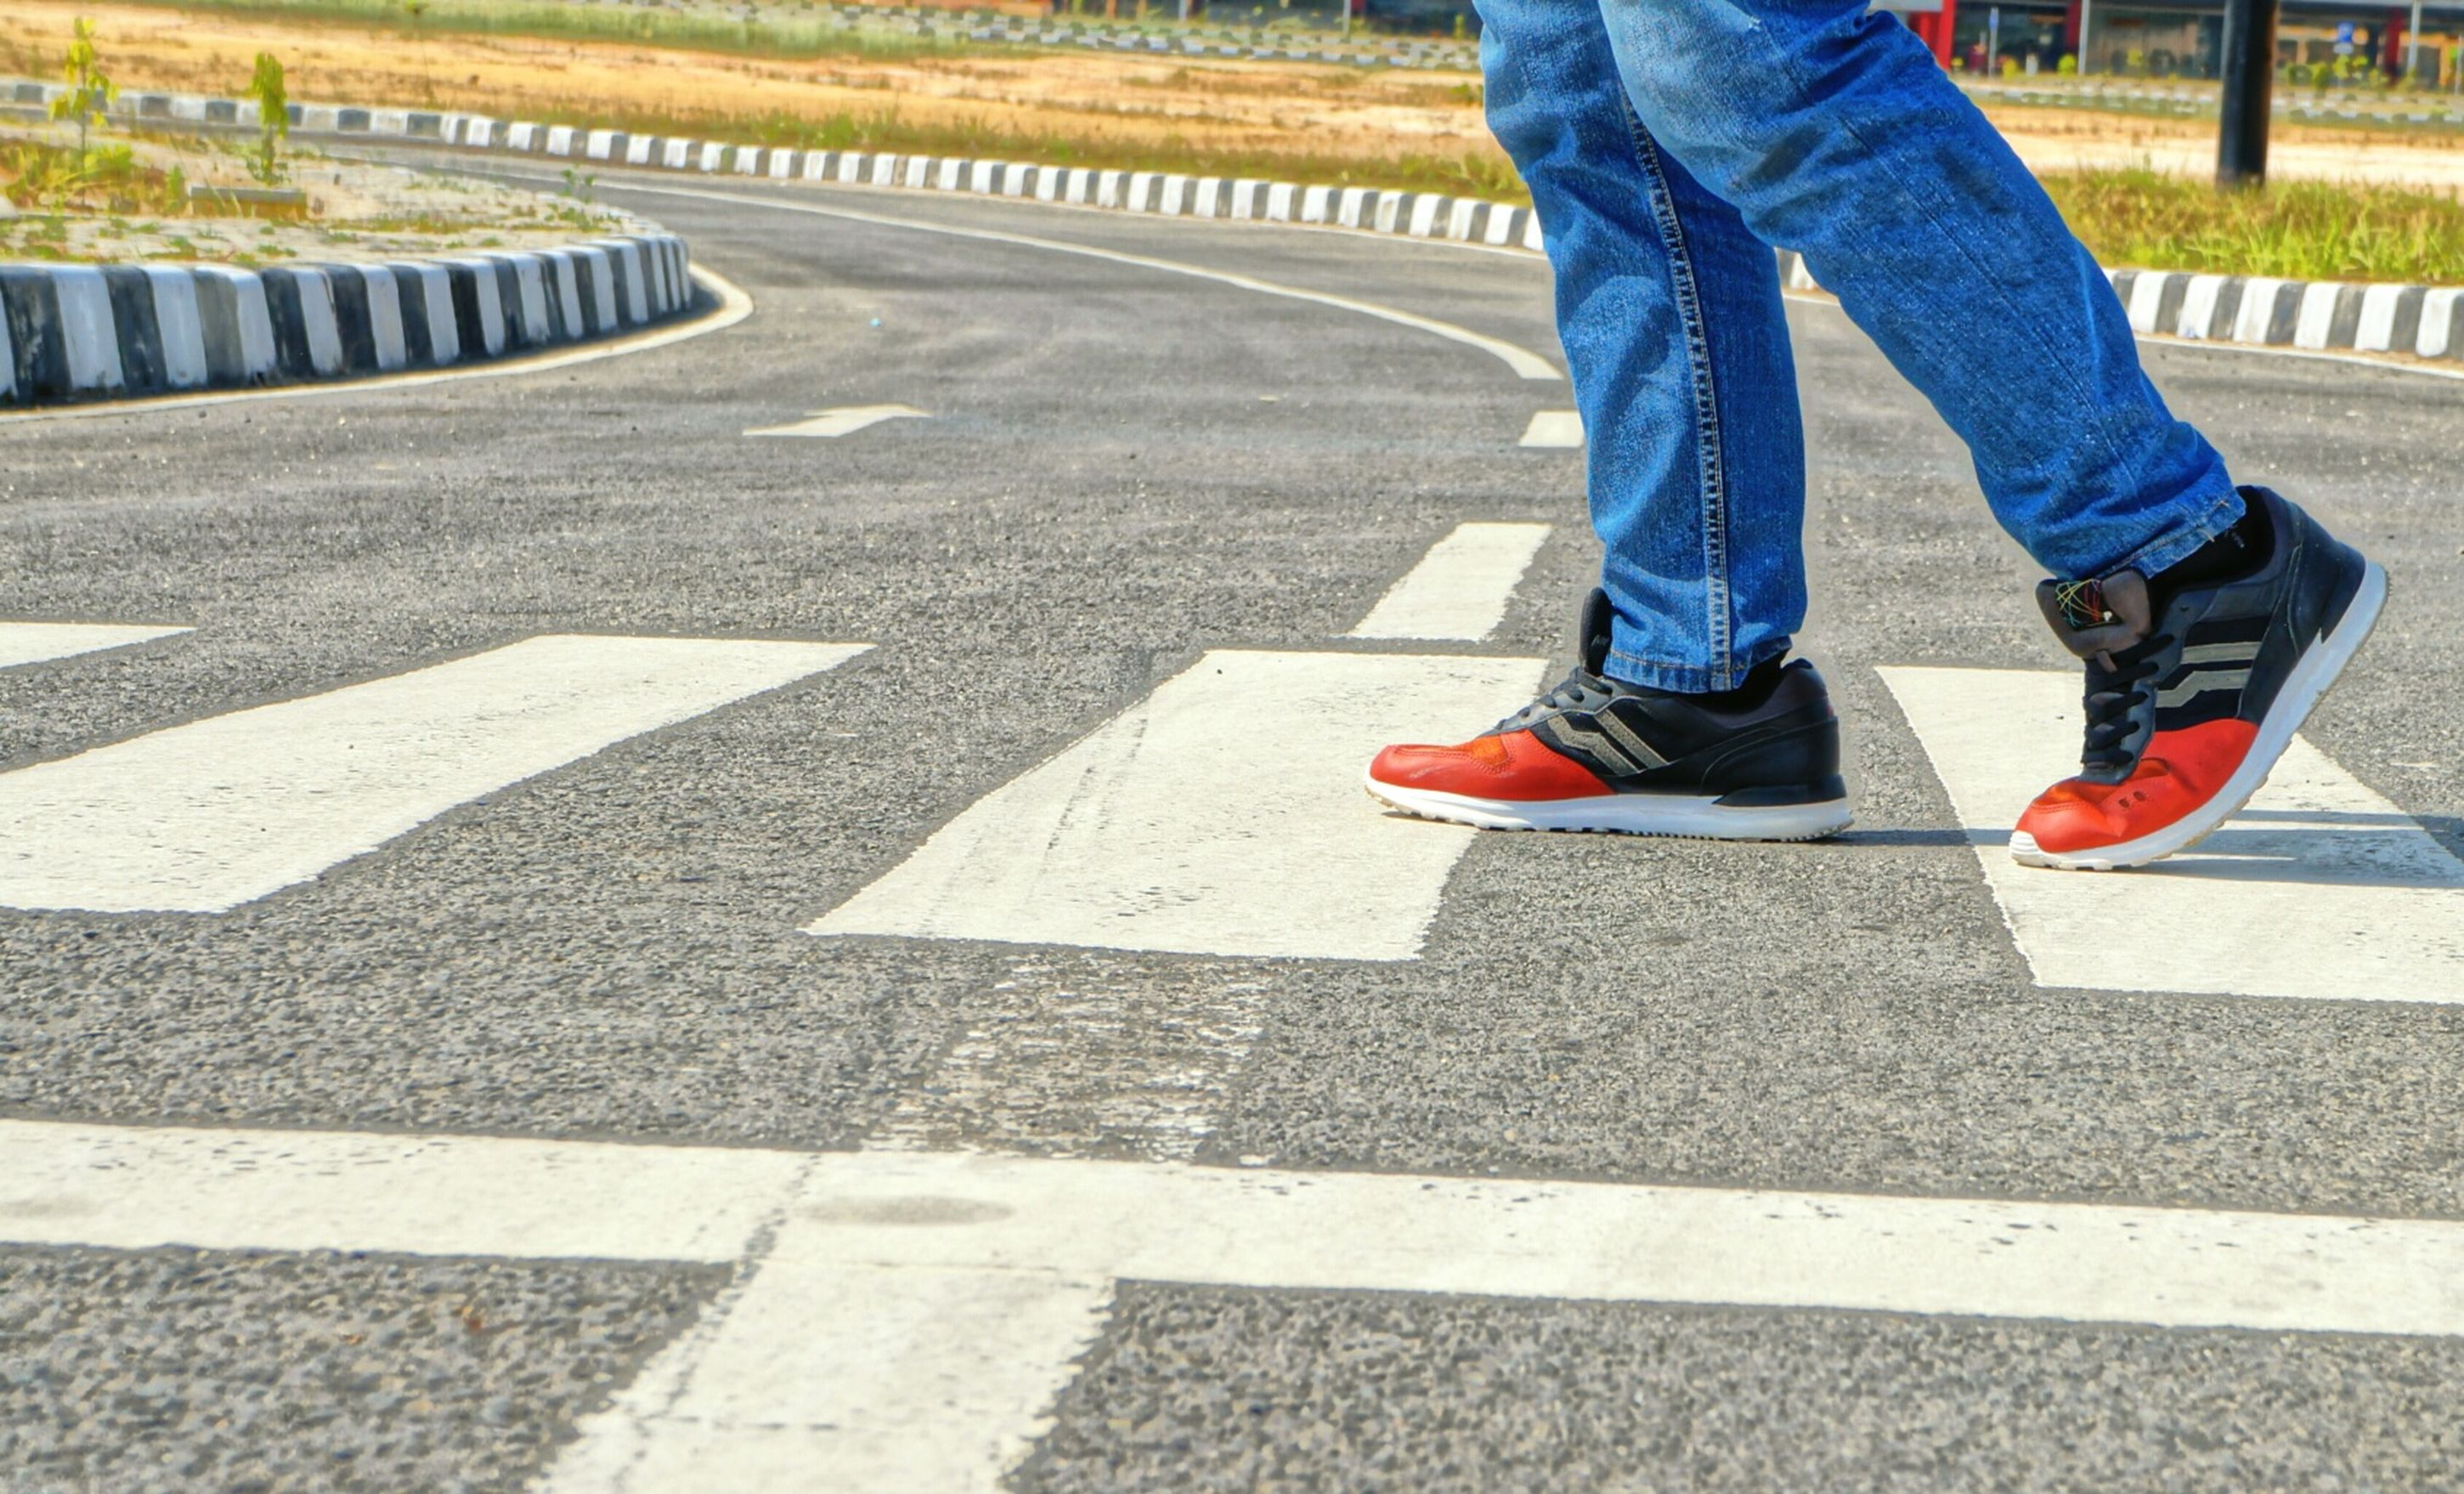 I feel save when walk in zebra cross Barefoot Vacation Time Airport